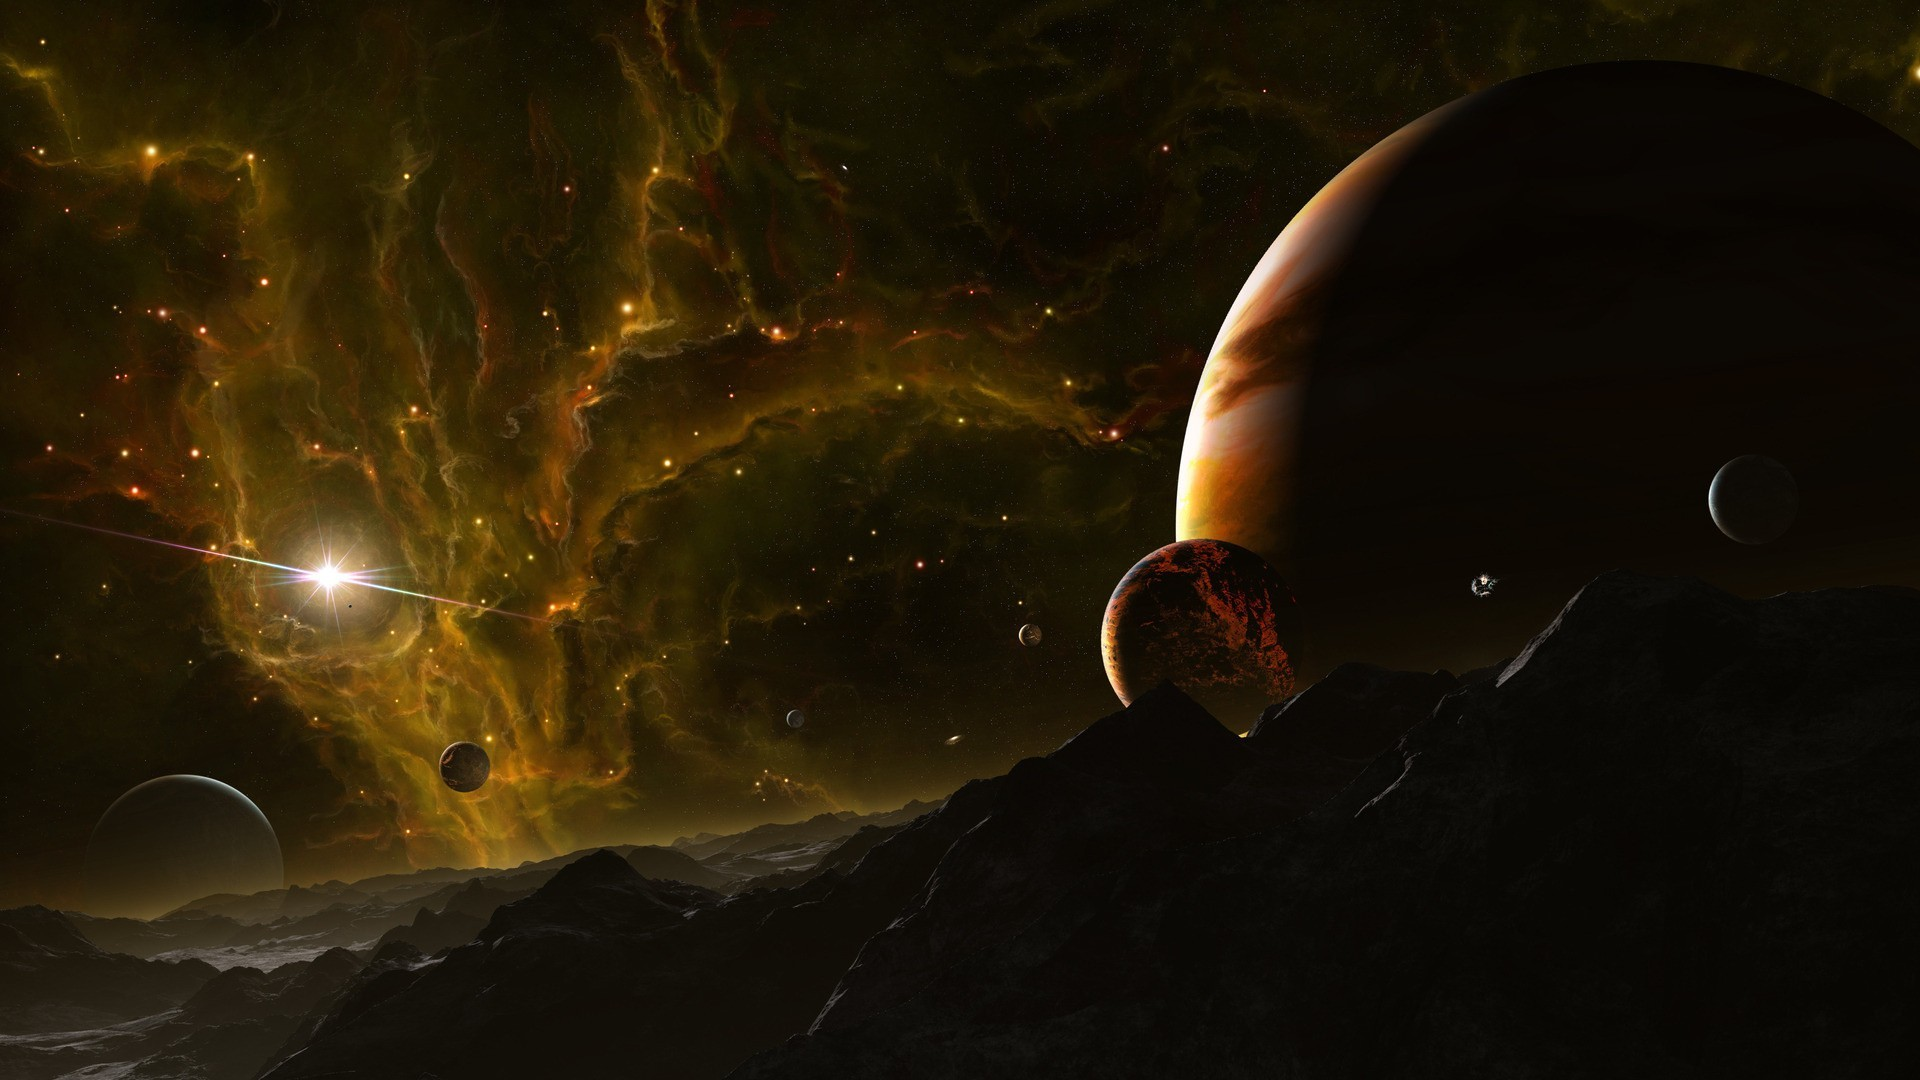 Outer Space Planets Digital Art Wallpaper At 3d Wallpapers